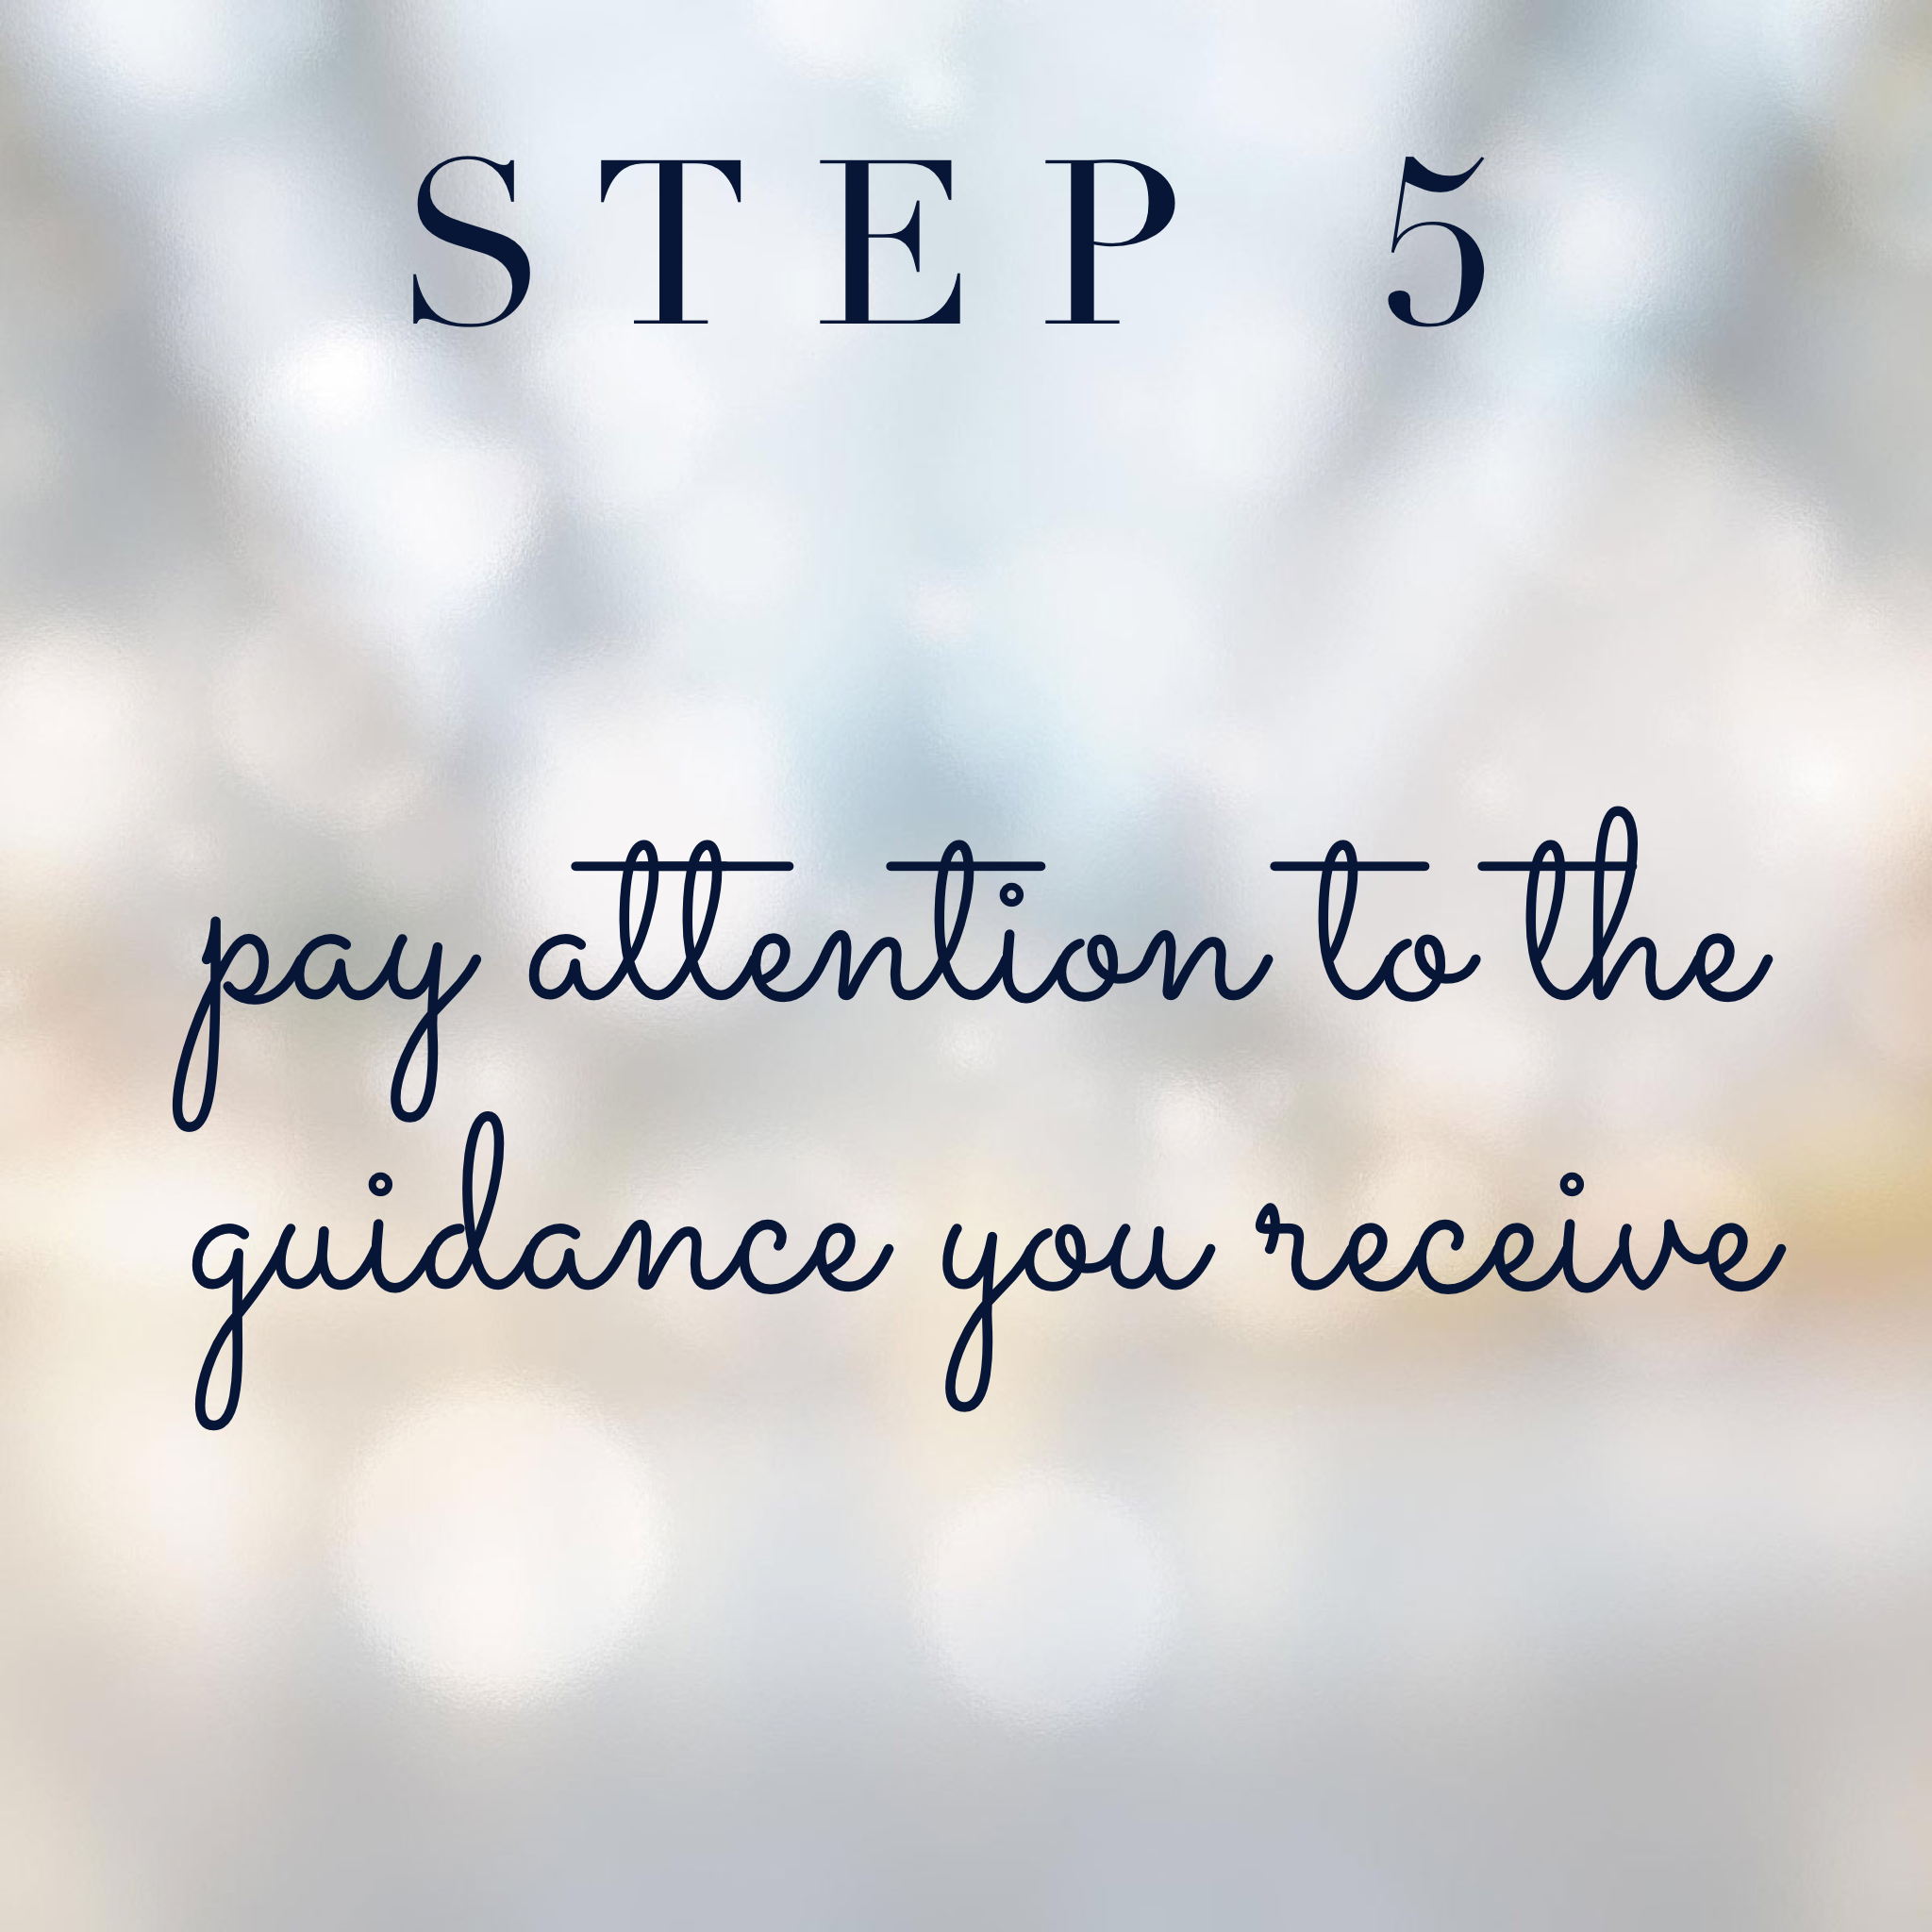 Connect with your spirit guides step 5: Pay attention to the guidance you receive